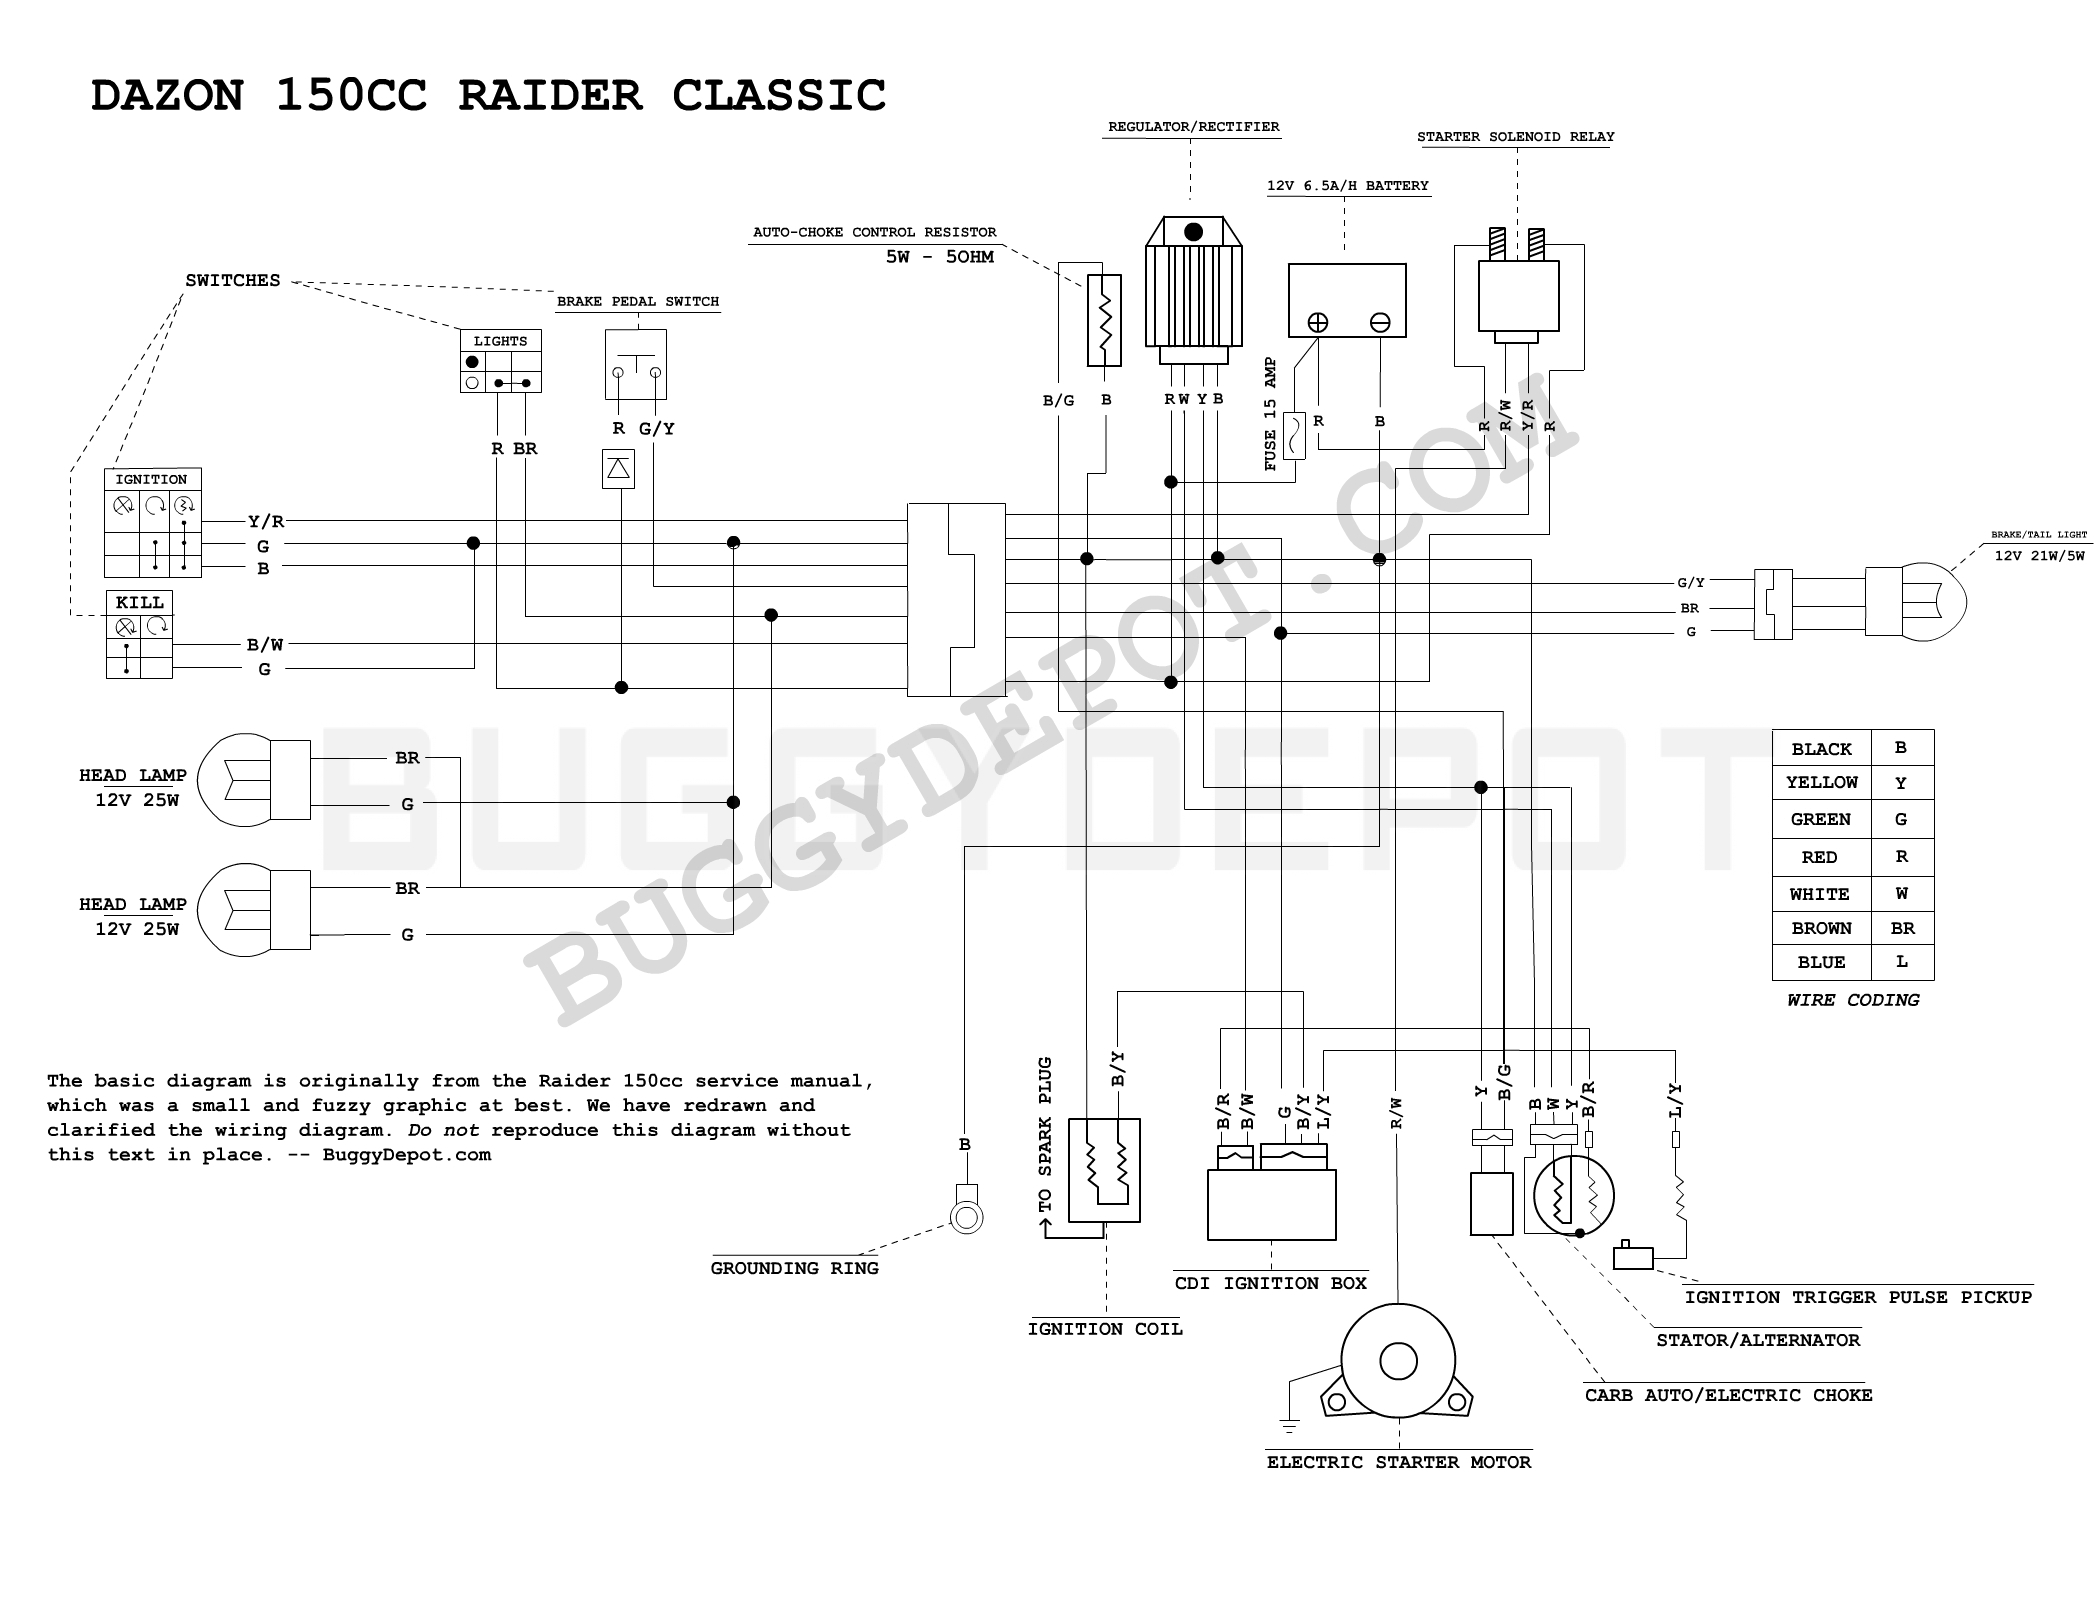 Dazon Raider Clic - Wiring Diagram - Buggy Depot Technical Center on honda ruckus engine swap, honda ruckus horn, honda ruckus controls, honda ruckus chassis, kymco people 50 wiring diagram, honda ruckus wire harness, honda ruckus radiator, victory hammer wiring diagram, honda ruckus speaker, honda ruckus fuel pump, honda ruckus starter, honda ruckus suspension, kymco people 150 wiring diagram, honda ruckus honda, yamaha vino wiring diagram, honda ruckus oil filter, honda ruckus accessories, vespa wiring diagram, honda ruckus radio, honda ruckus turn signals,